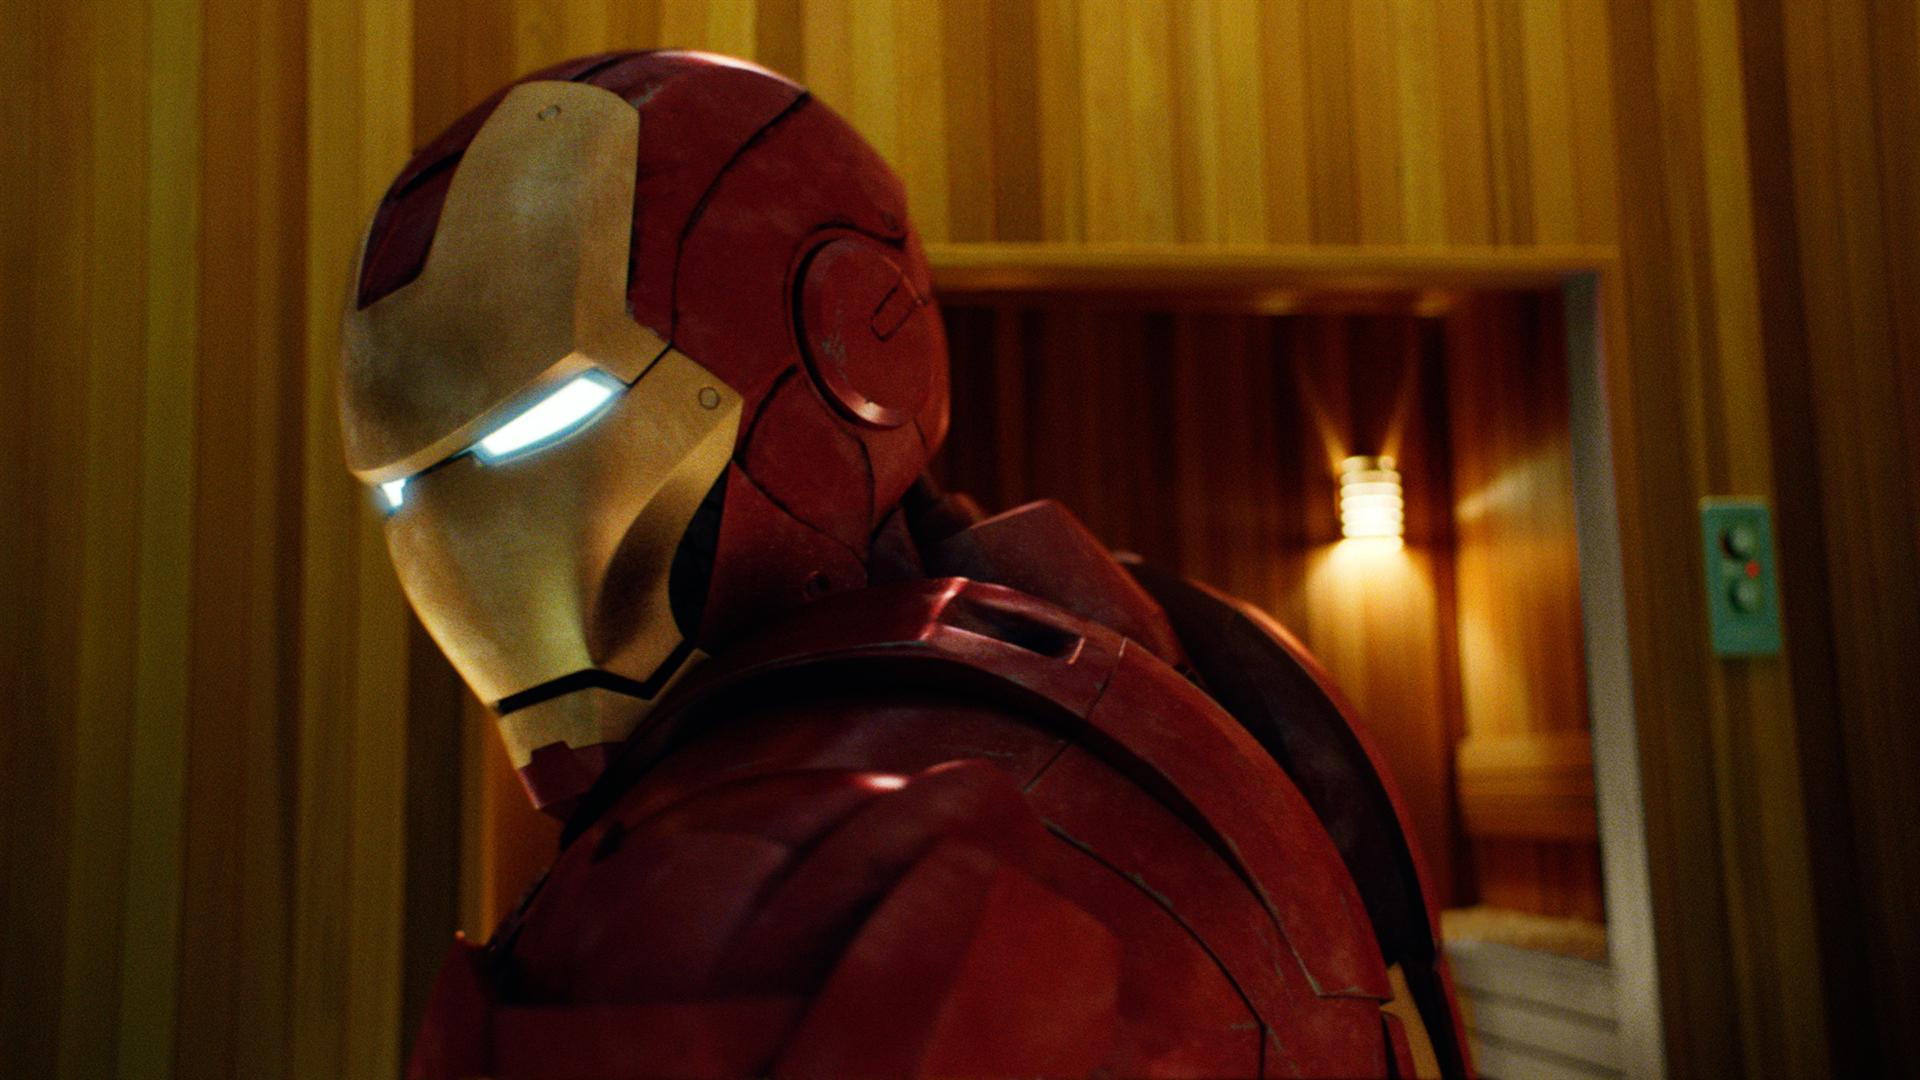 'Iron Man 2' – Ten New Stills From The Film Hit The Web